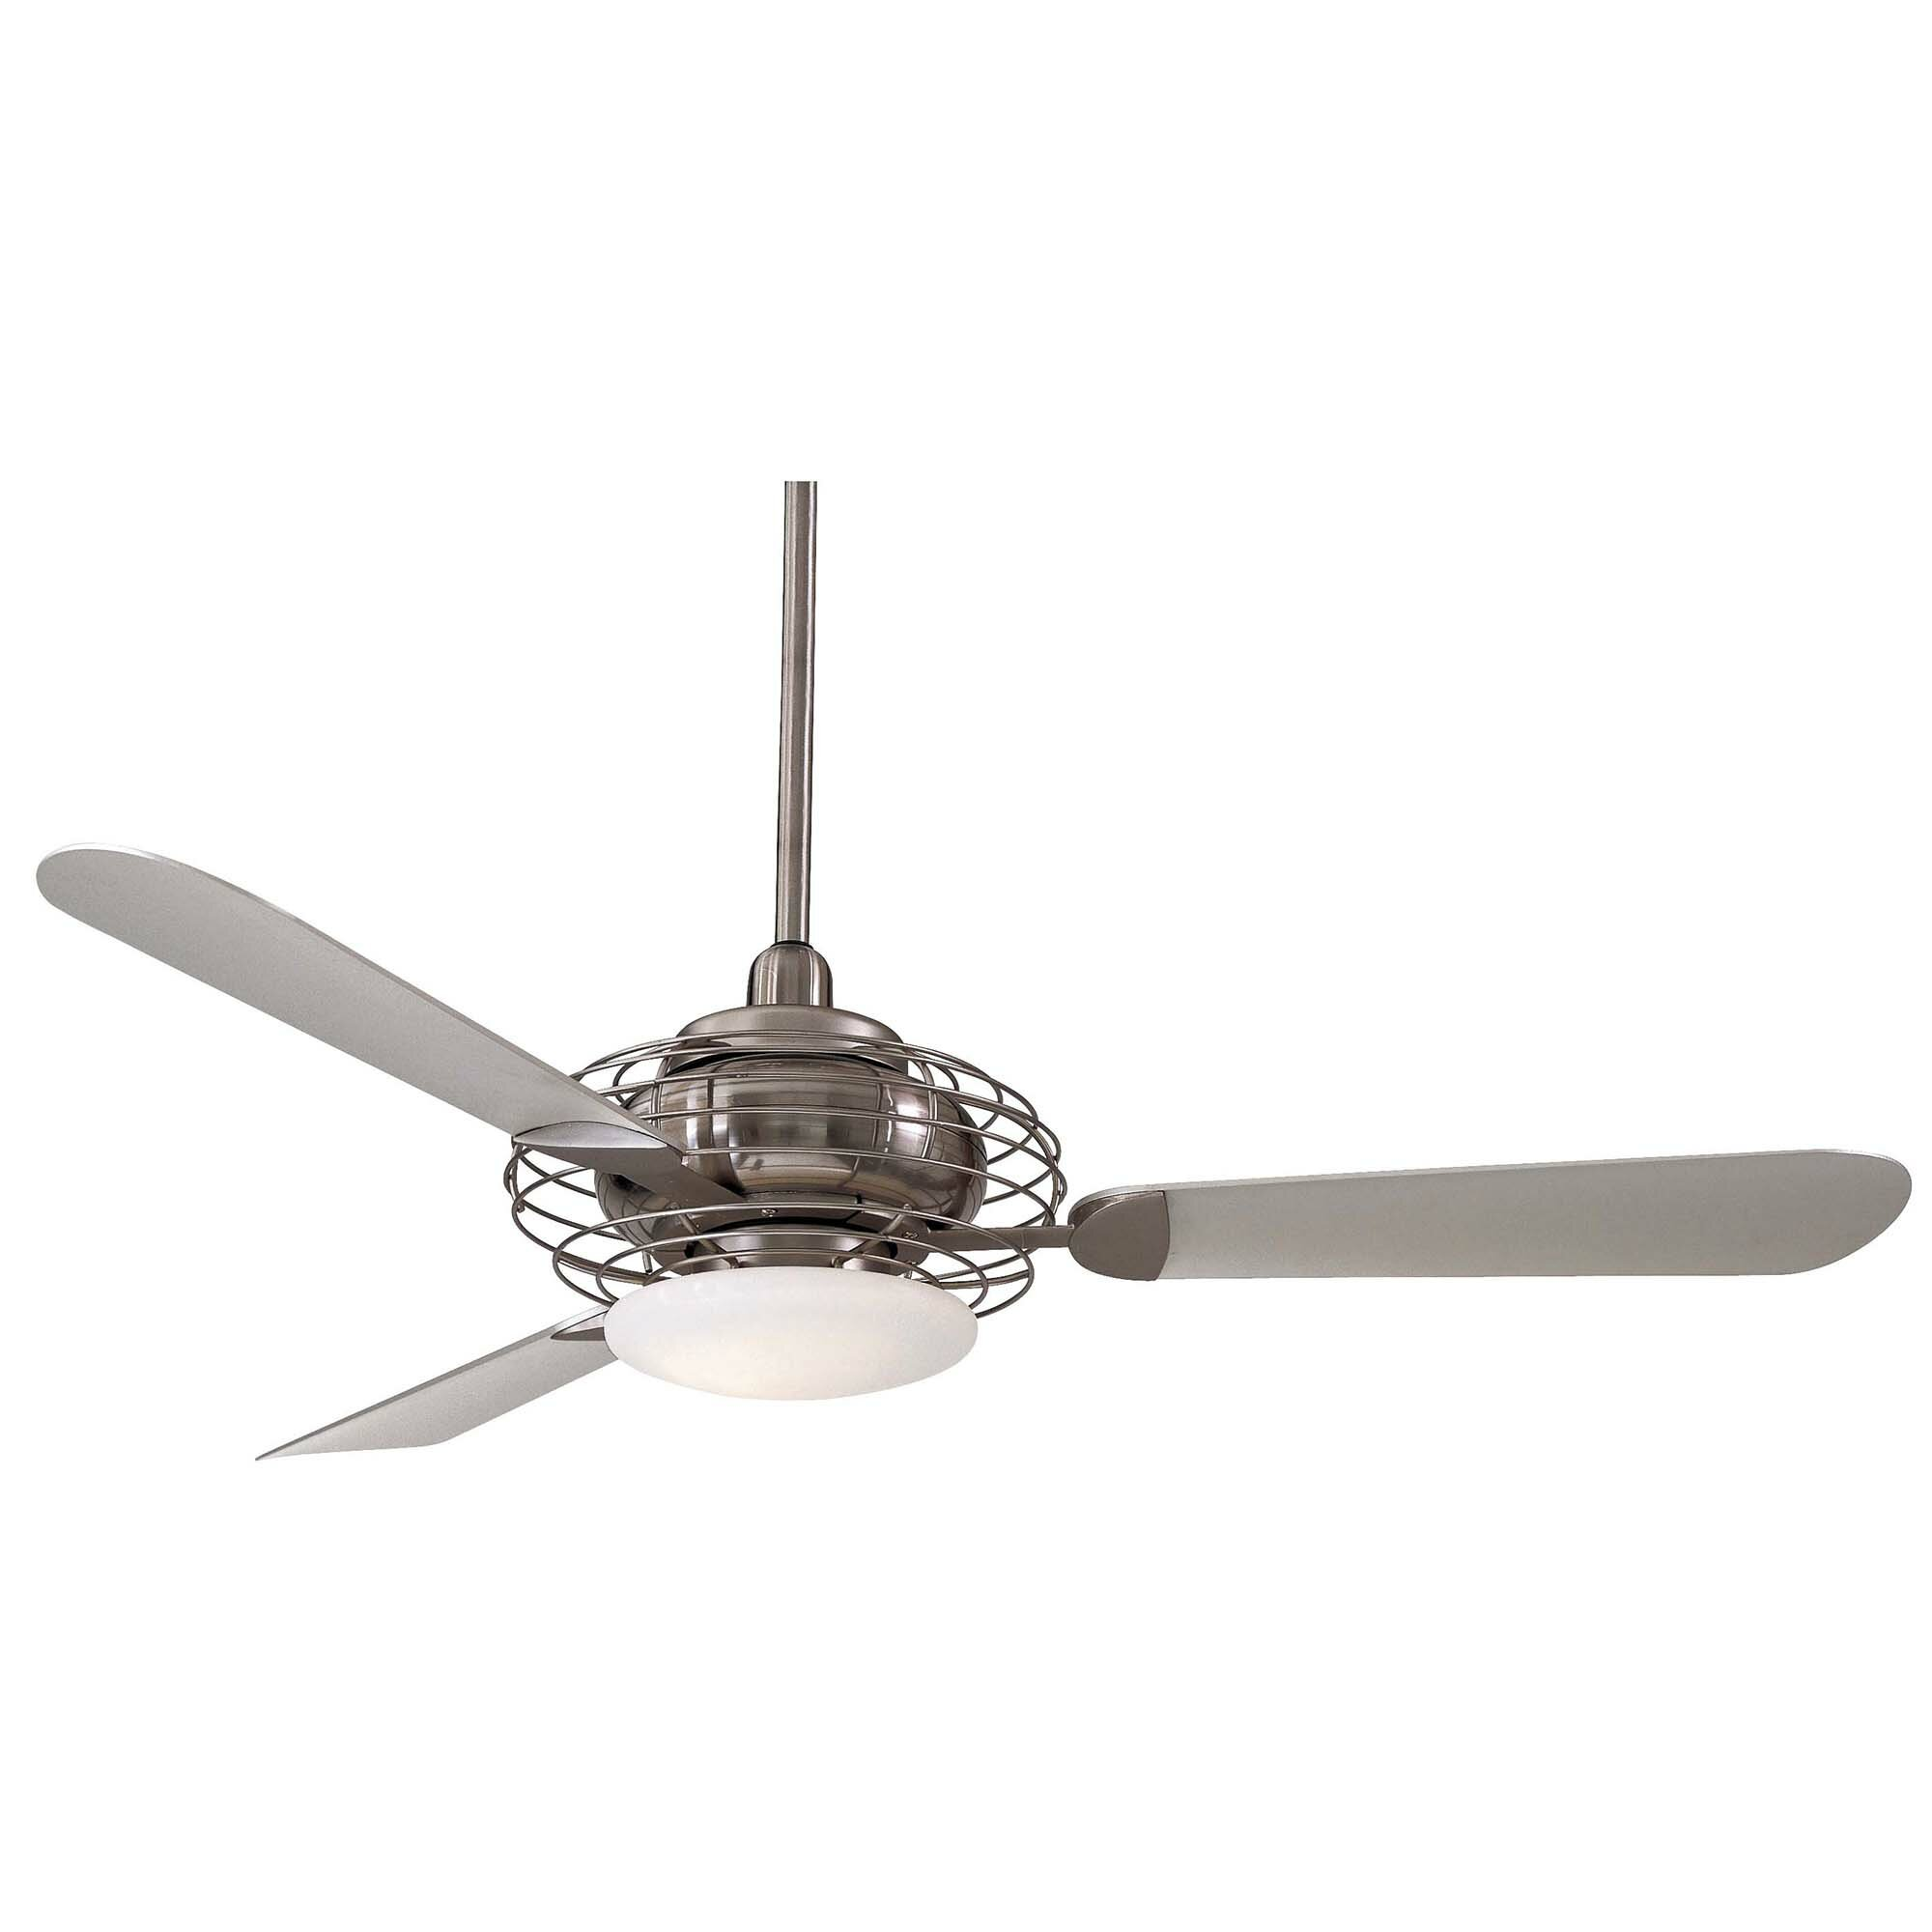 product note optional acero silver the bn bs included art squared light ceiling fan g